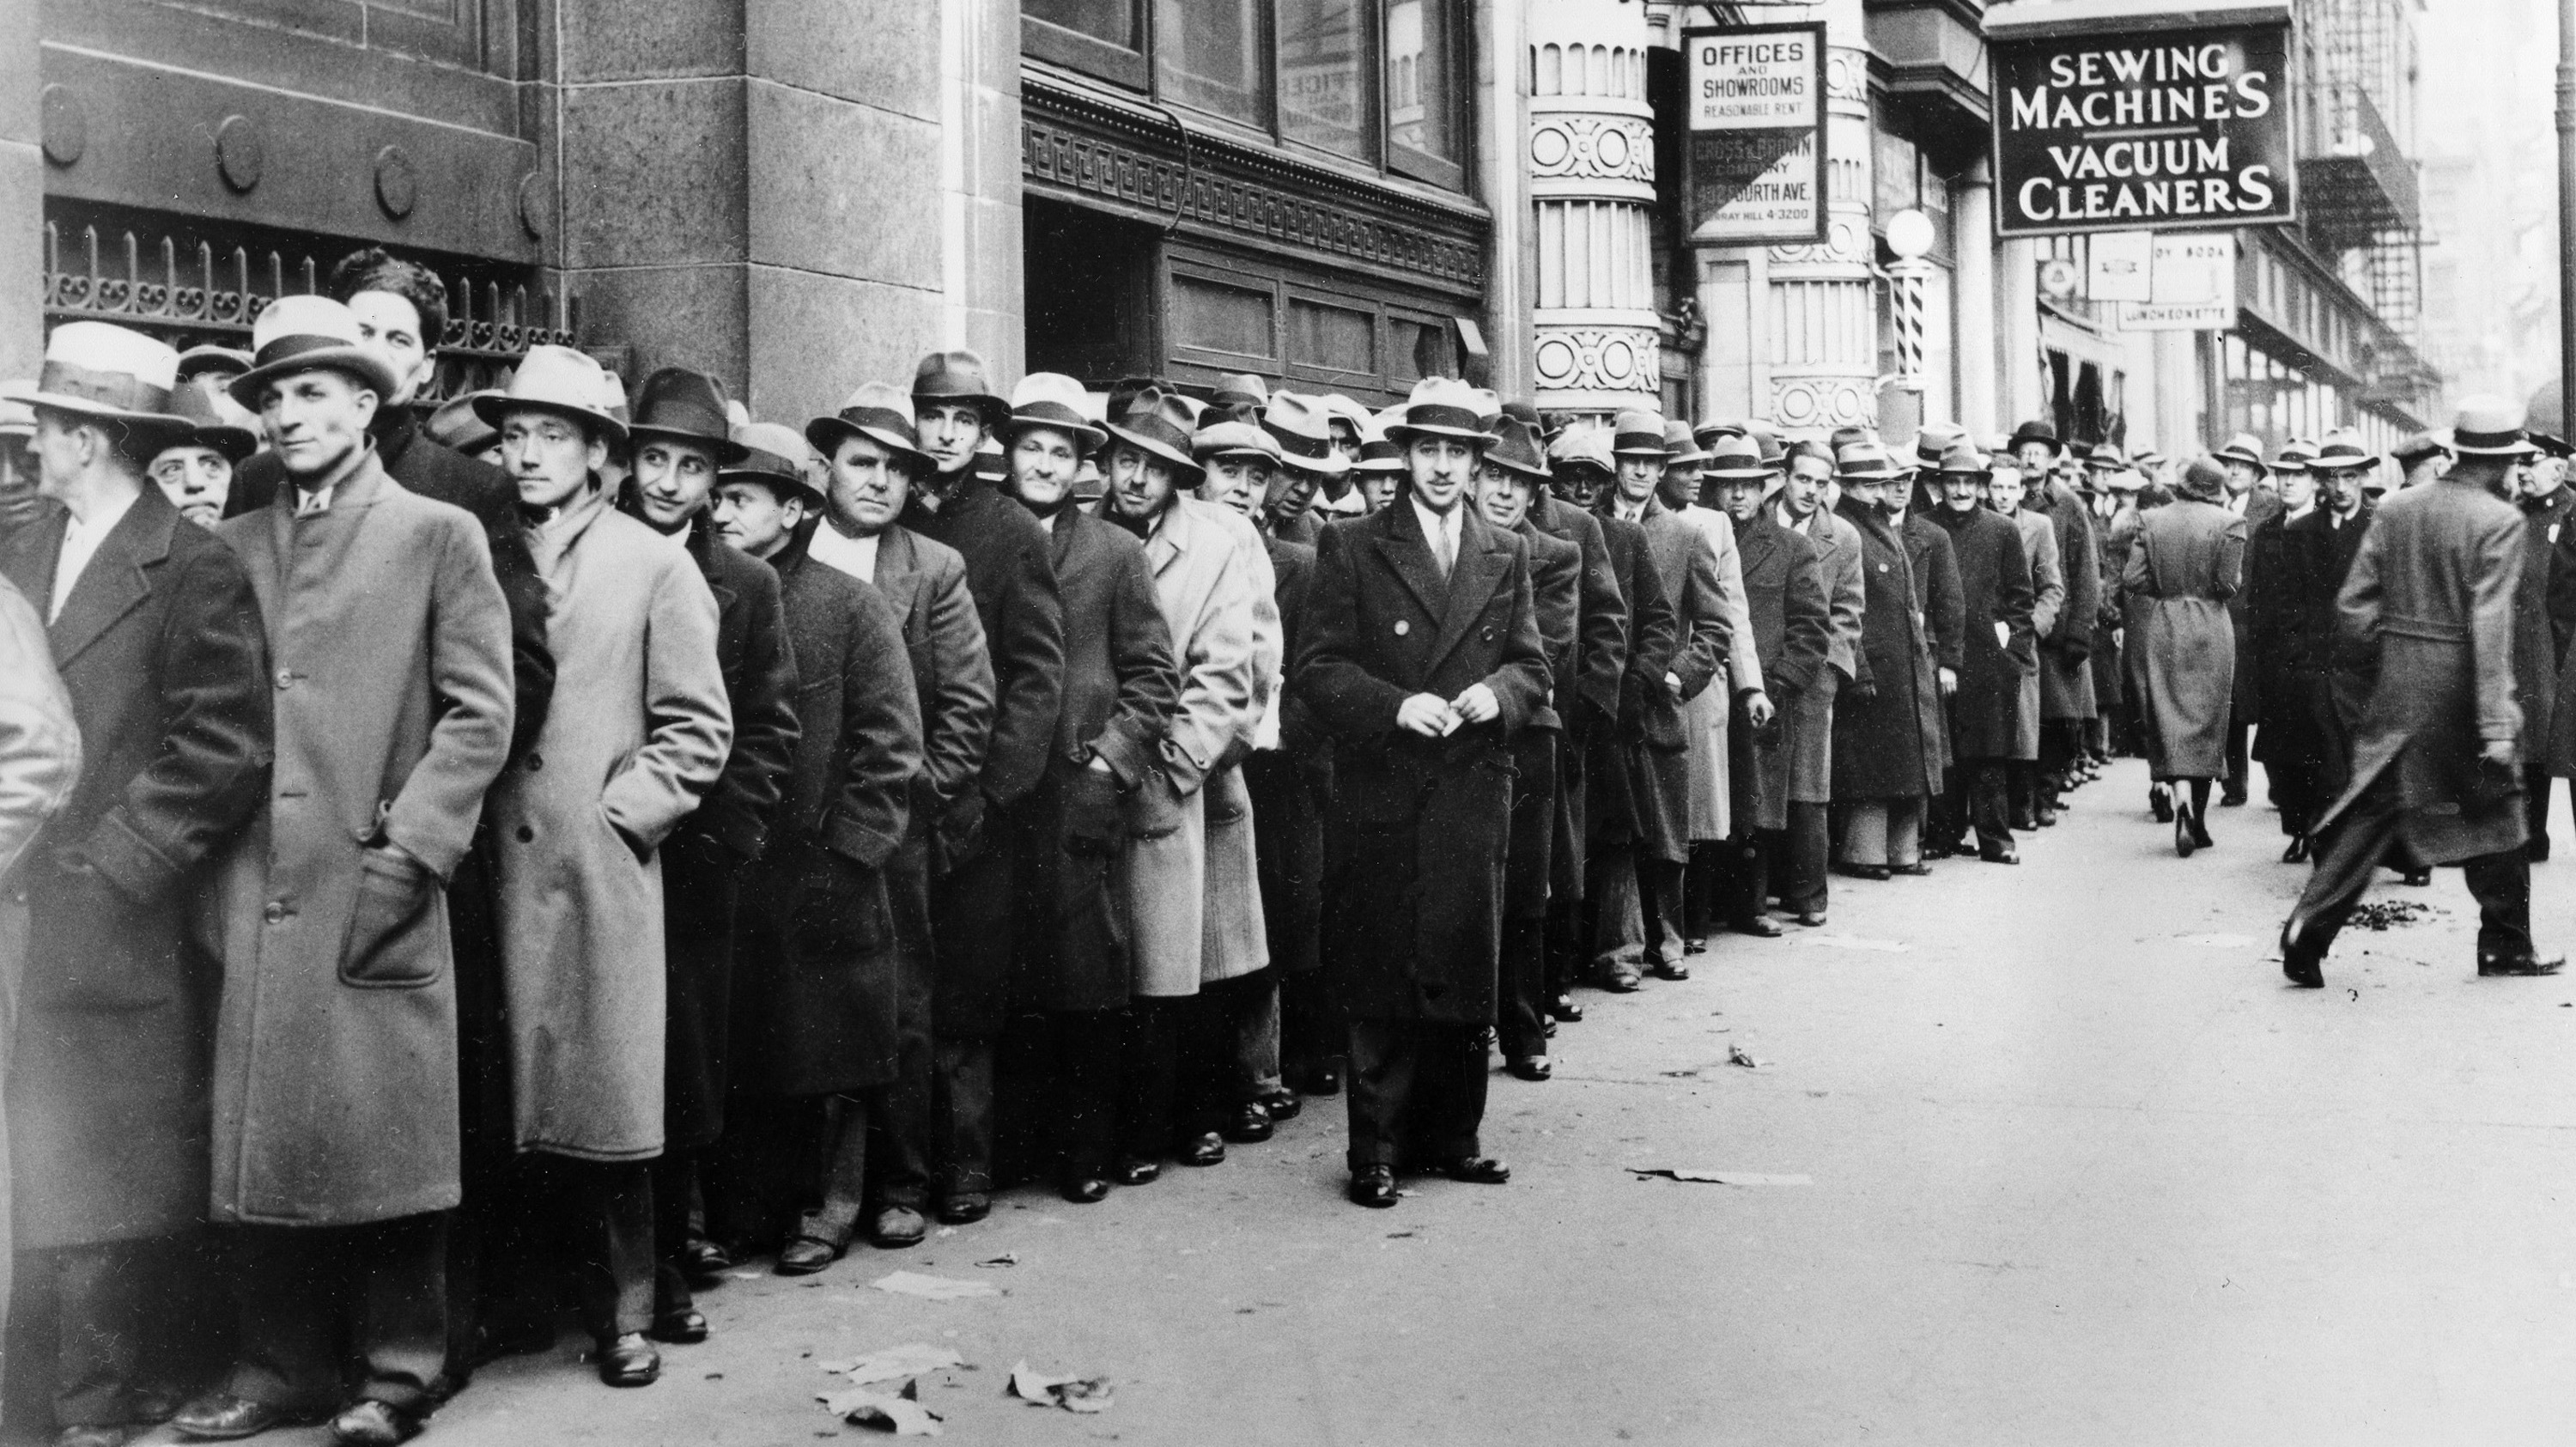 homeless and unemployed in the 1930s in the united states Unemployed great depression stock photos and images demonstration of unemployed workers april 1934 united states an unemployed homeless.